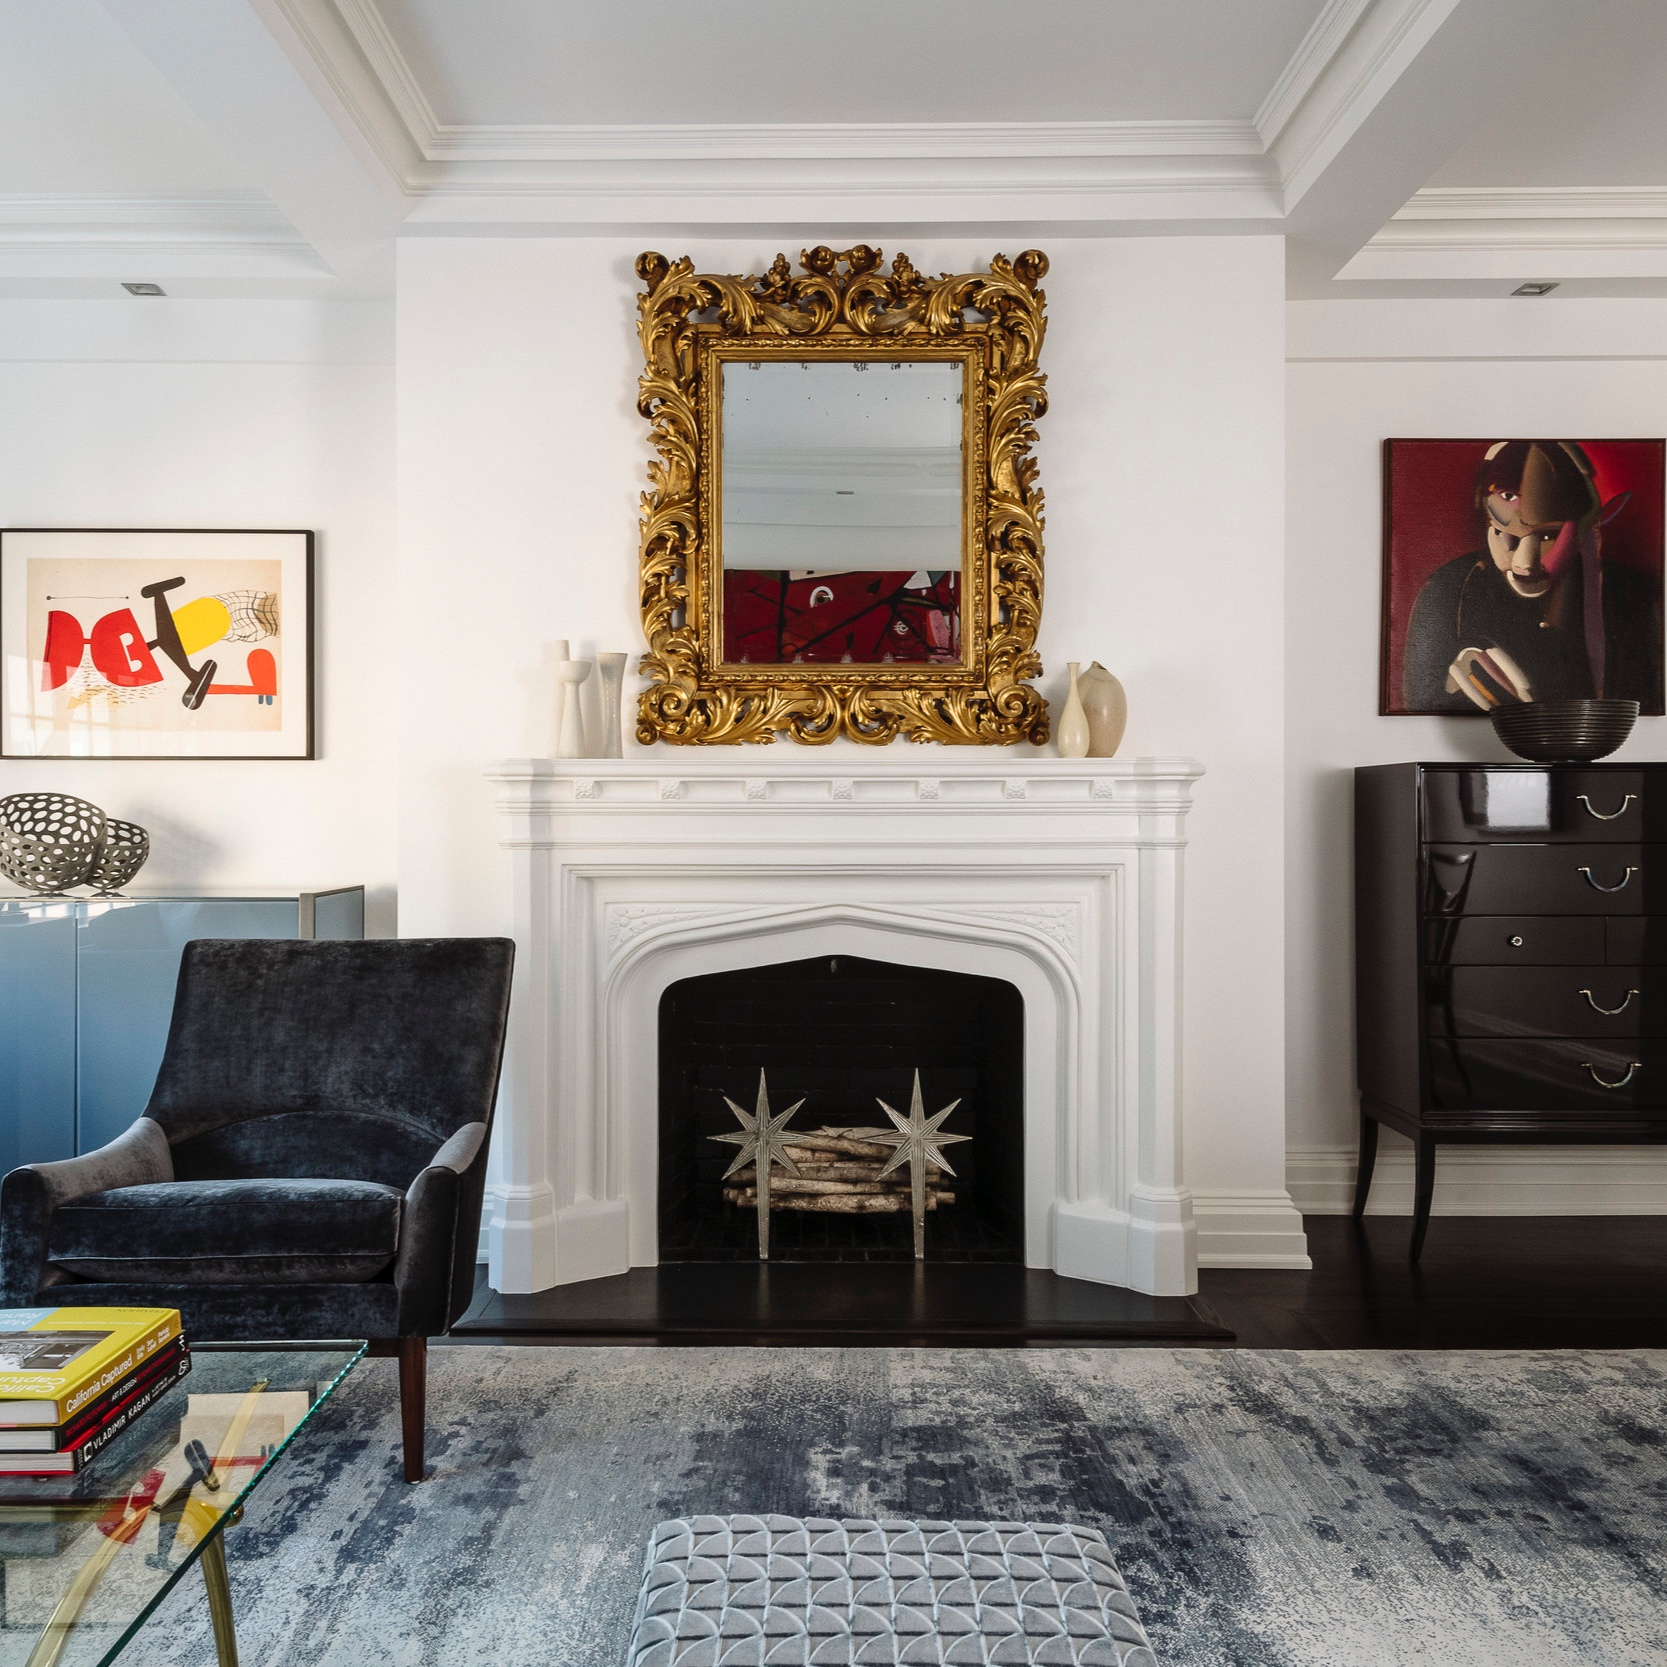 Gramercy Park Apartment  - Coming soon